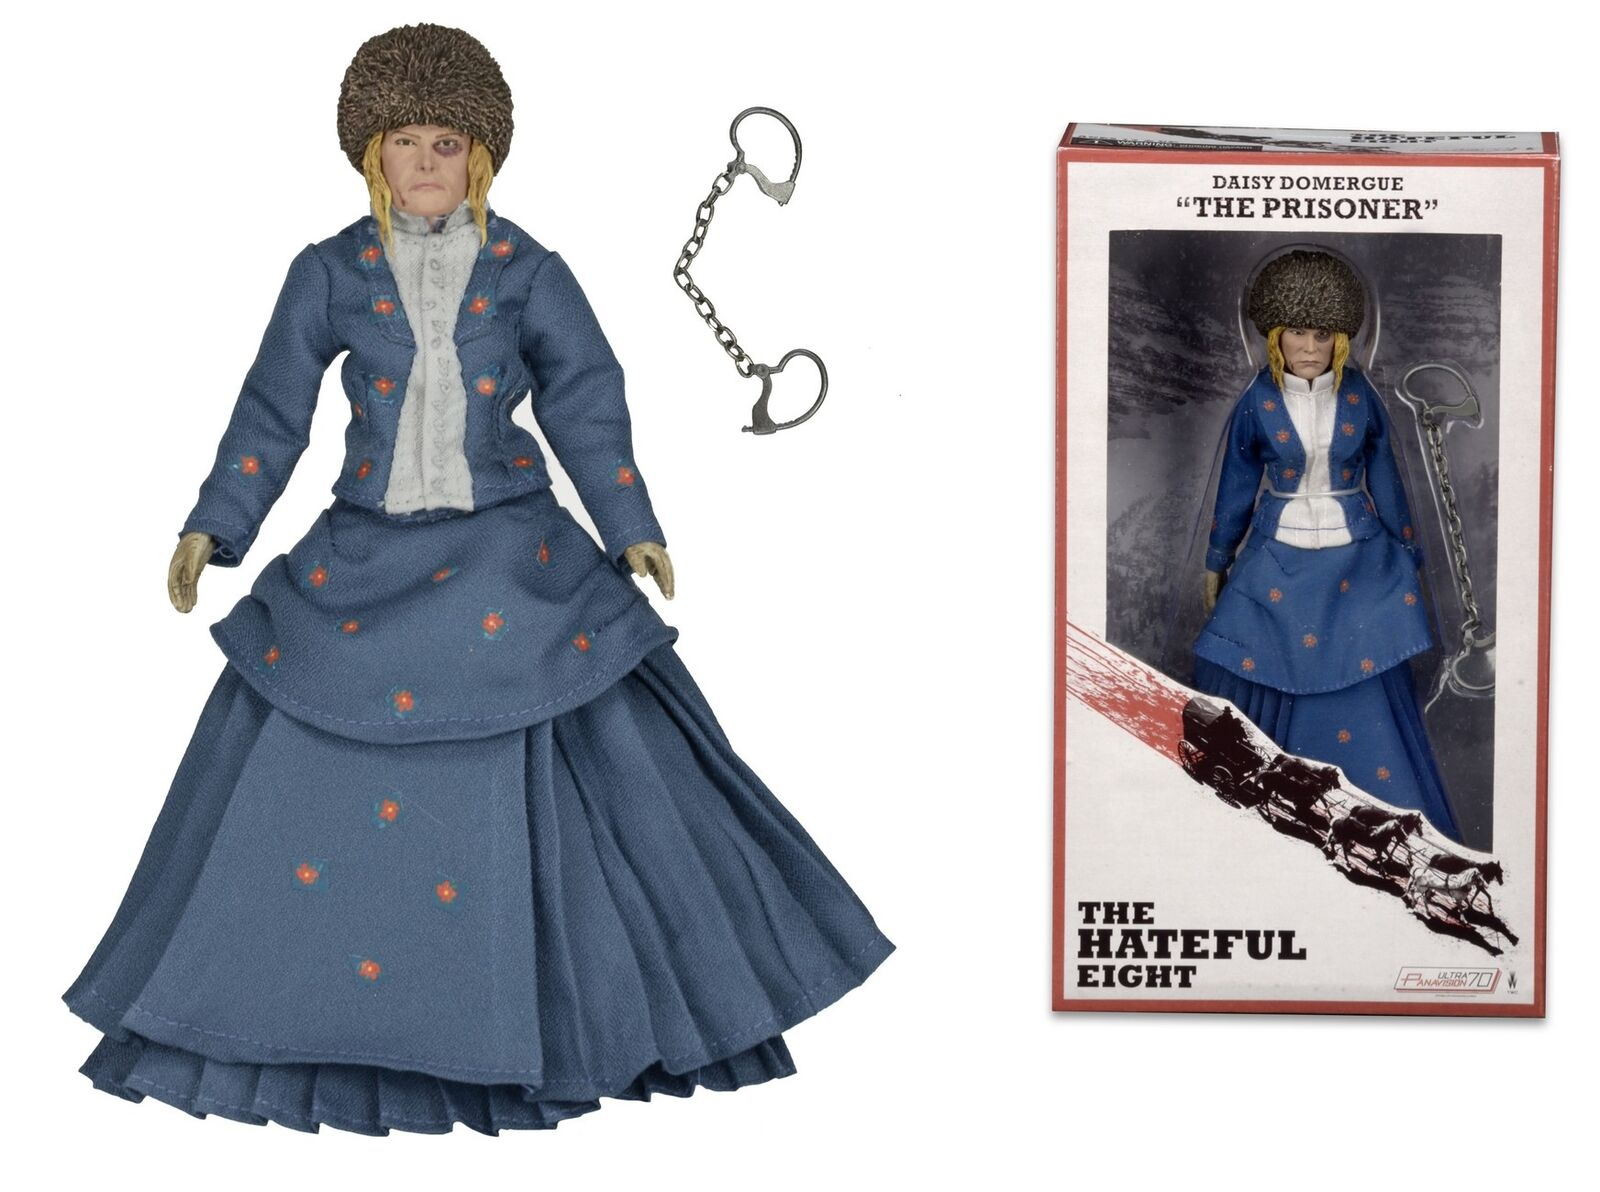 NECA The Hateful Eight Daisy Domergue (The Prisoner) – 8